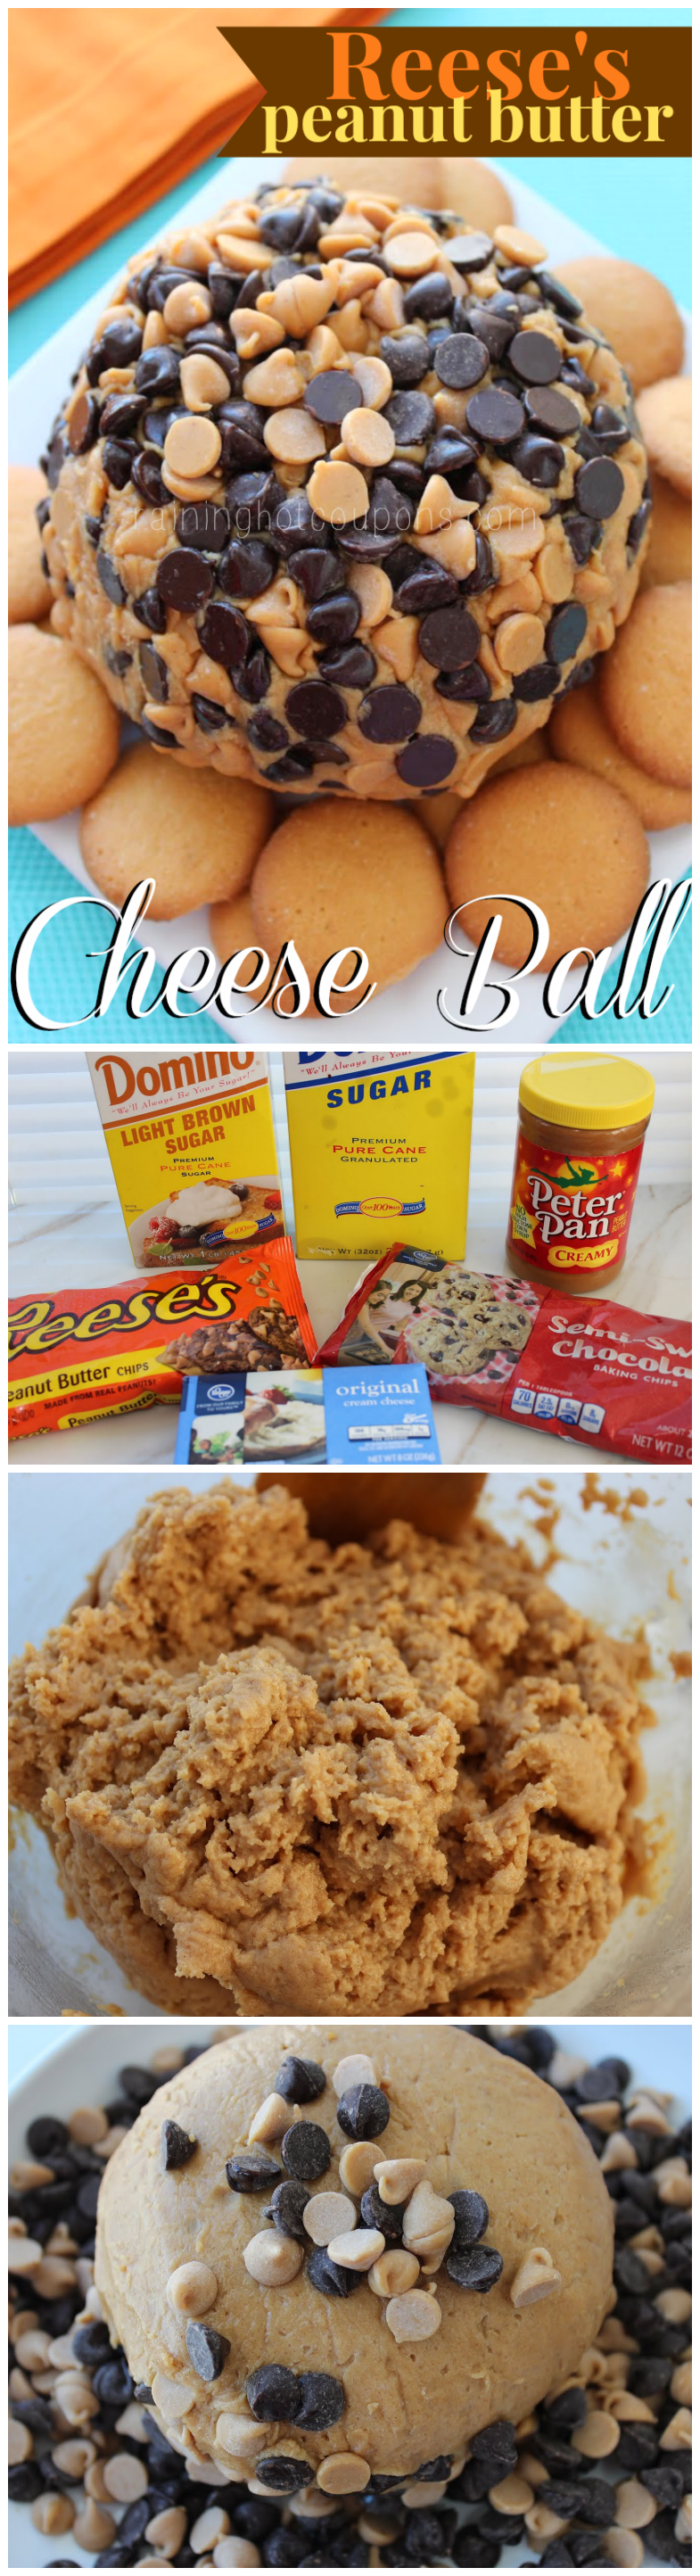 reeses cheese ball collage.png